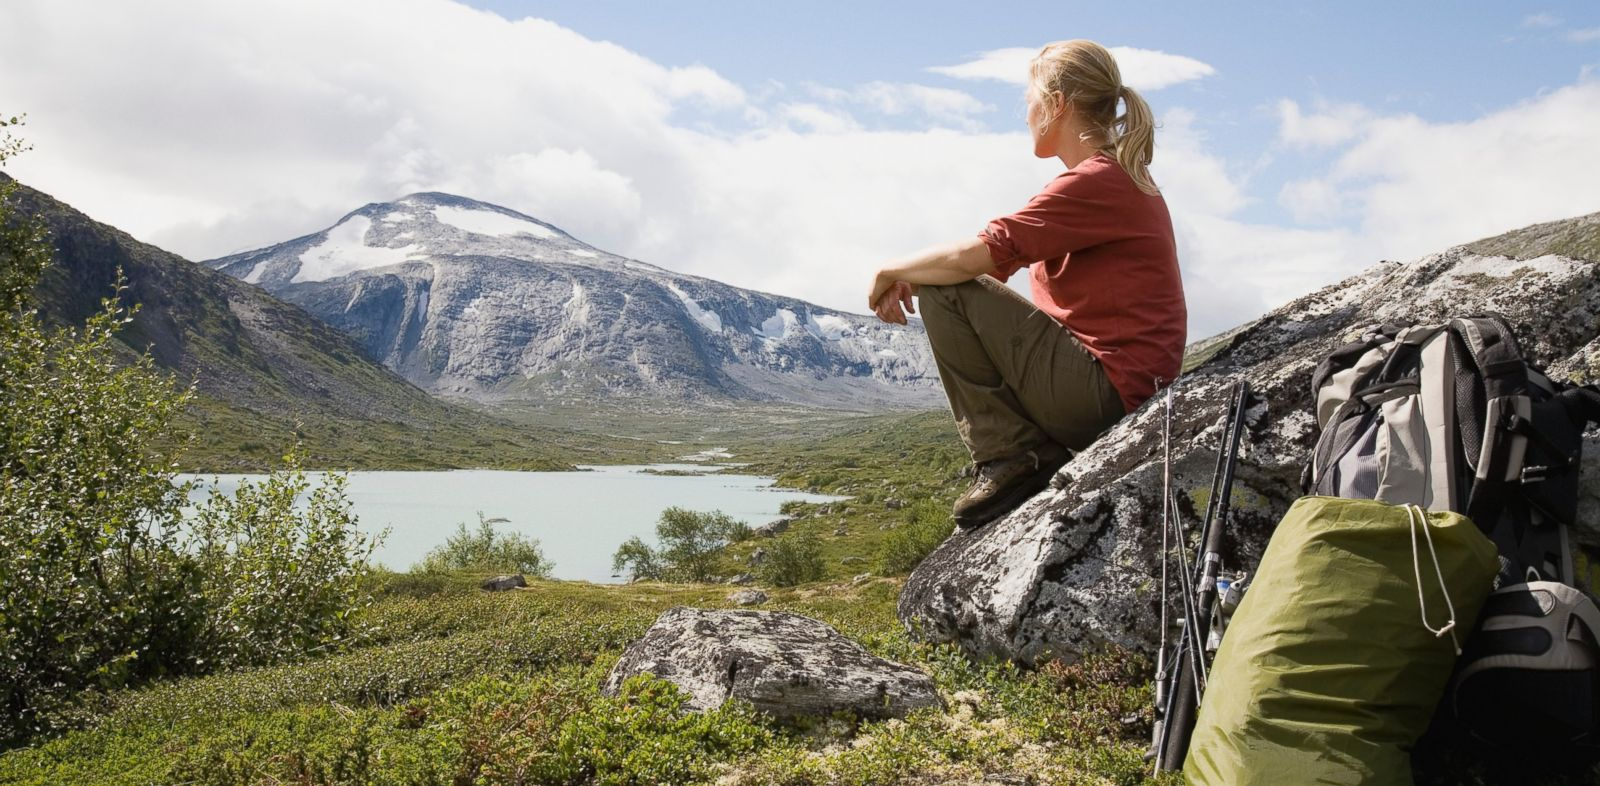 PHOTO: In this stock photo, a female hiker overlooks Strynefjellet mountain, Norway.